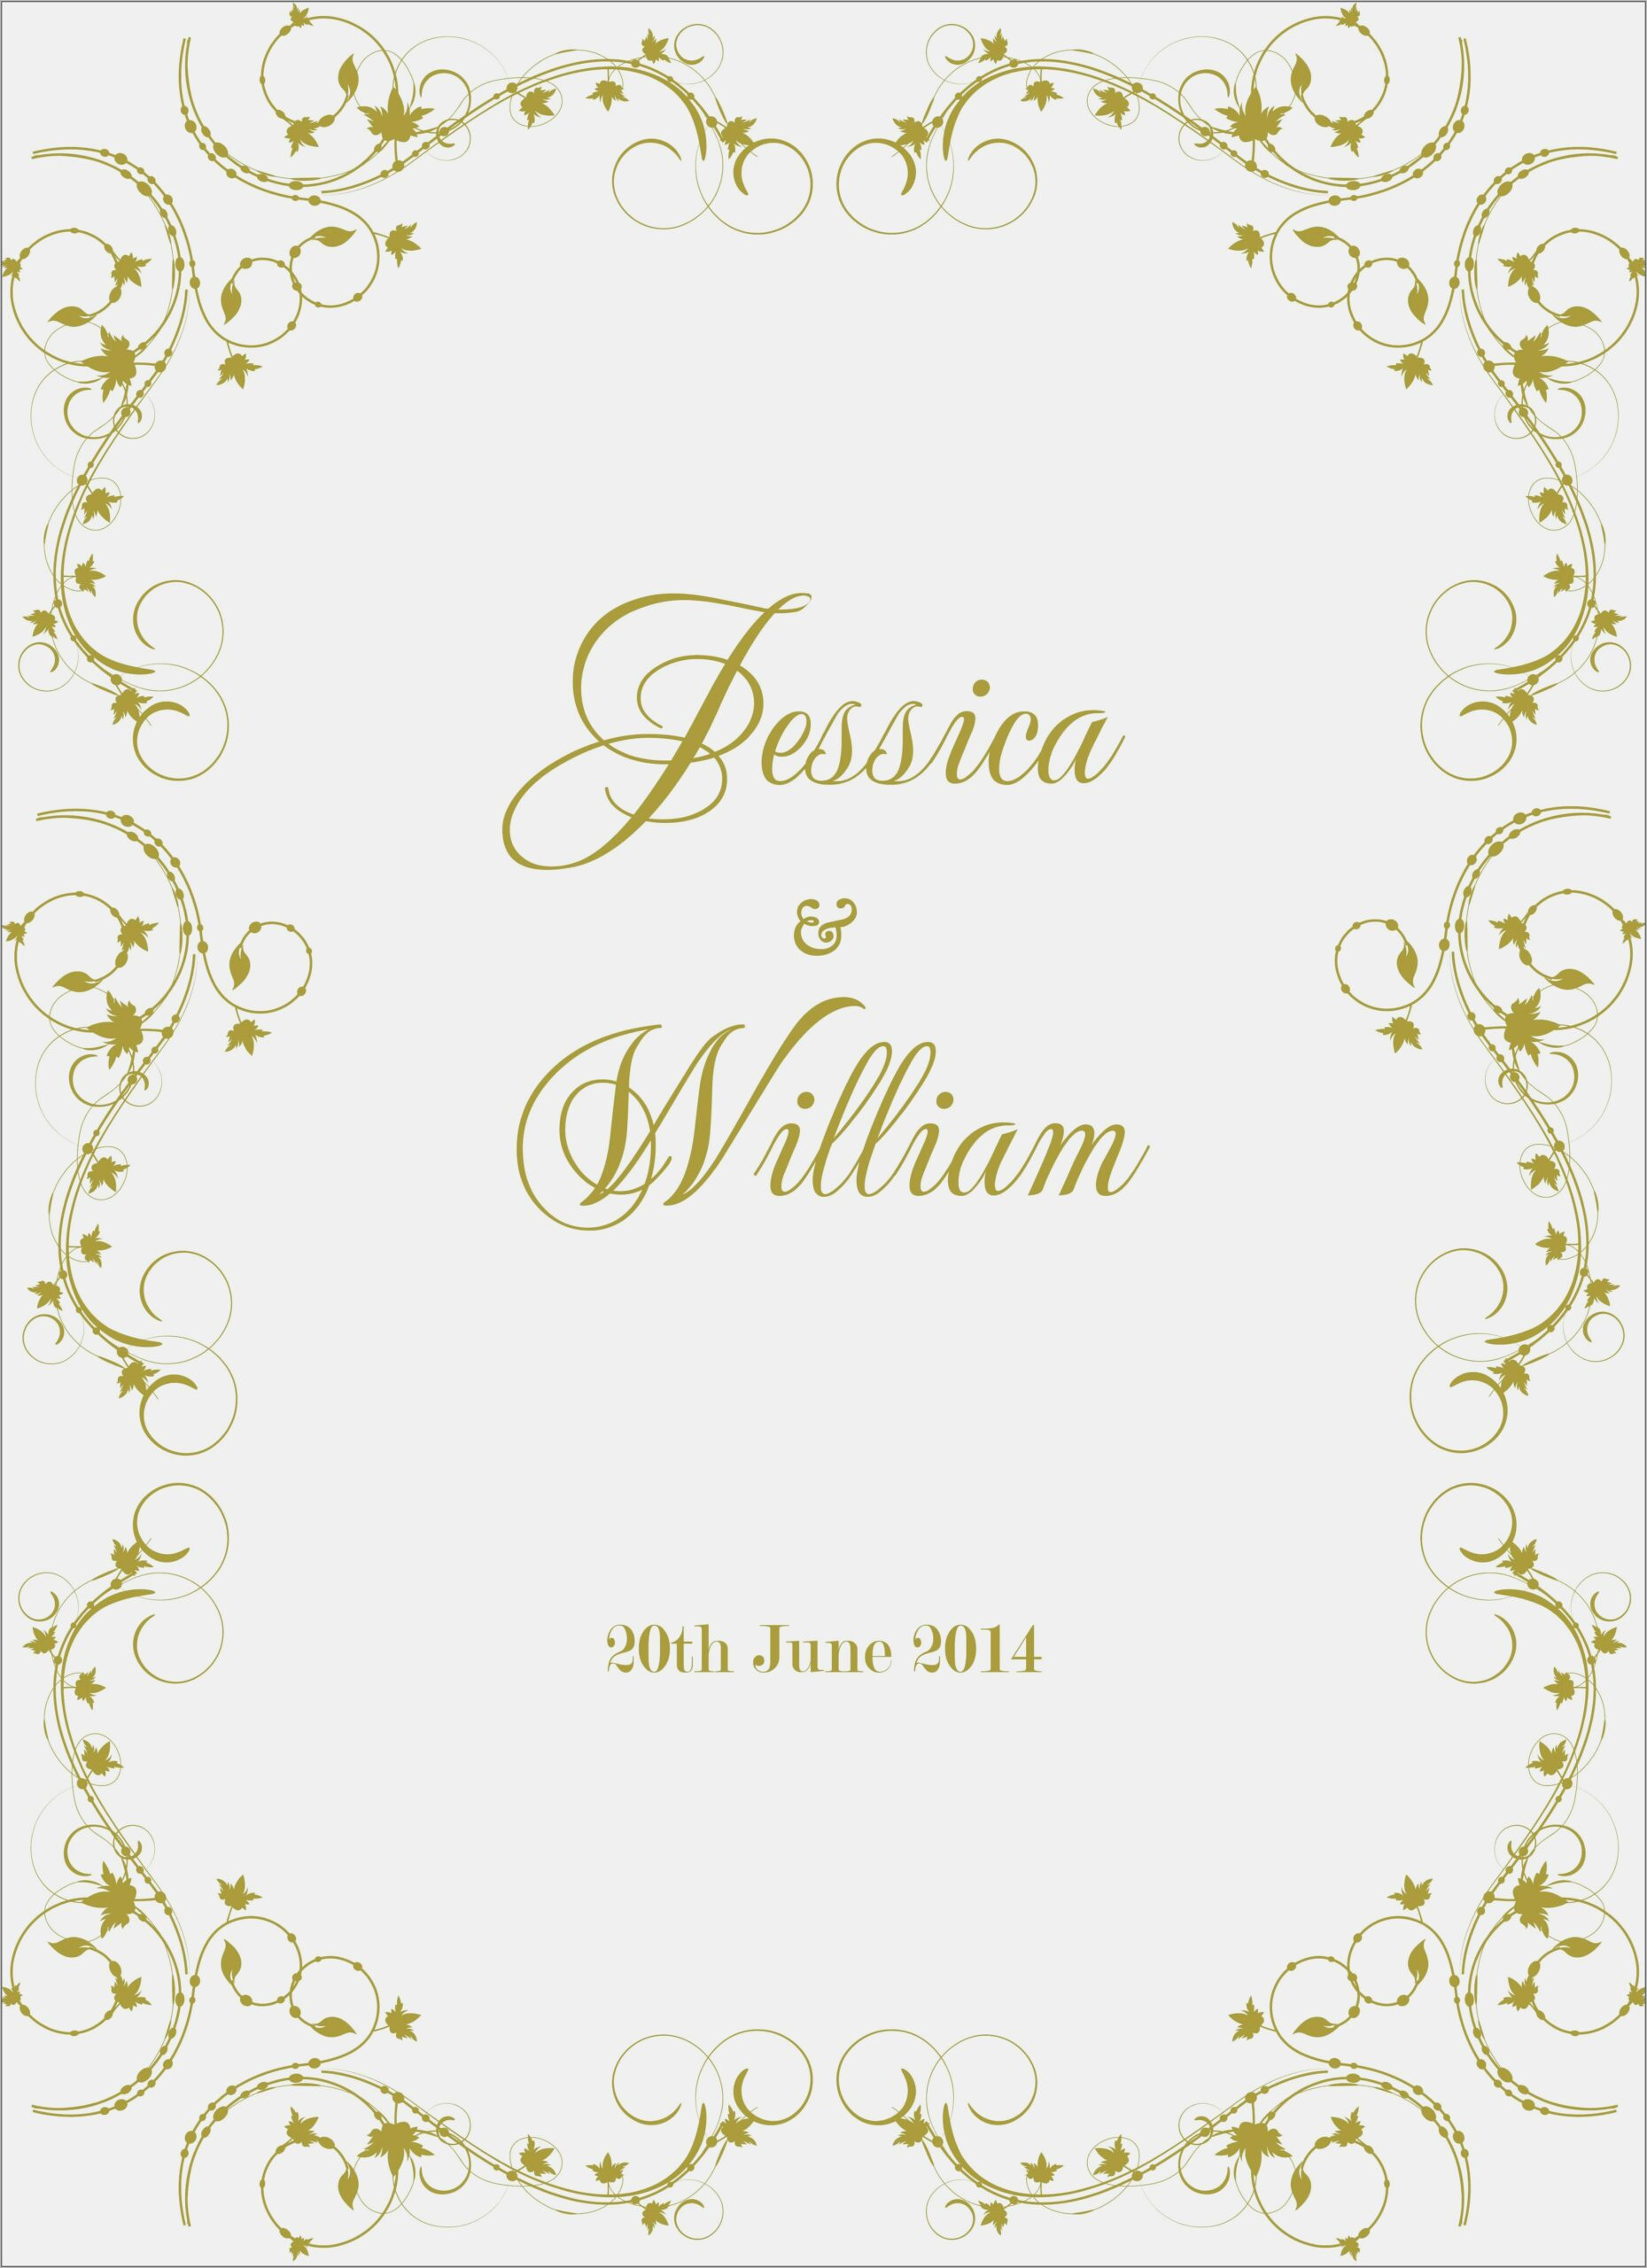 Free Decorative Borders For Wedding Invitations Scaled